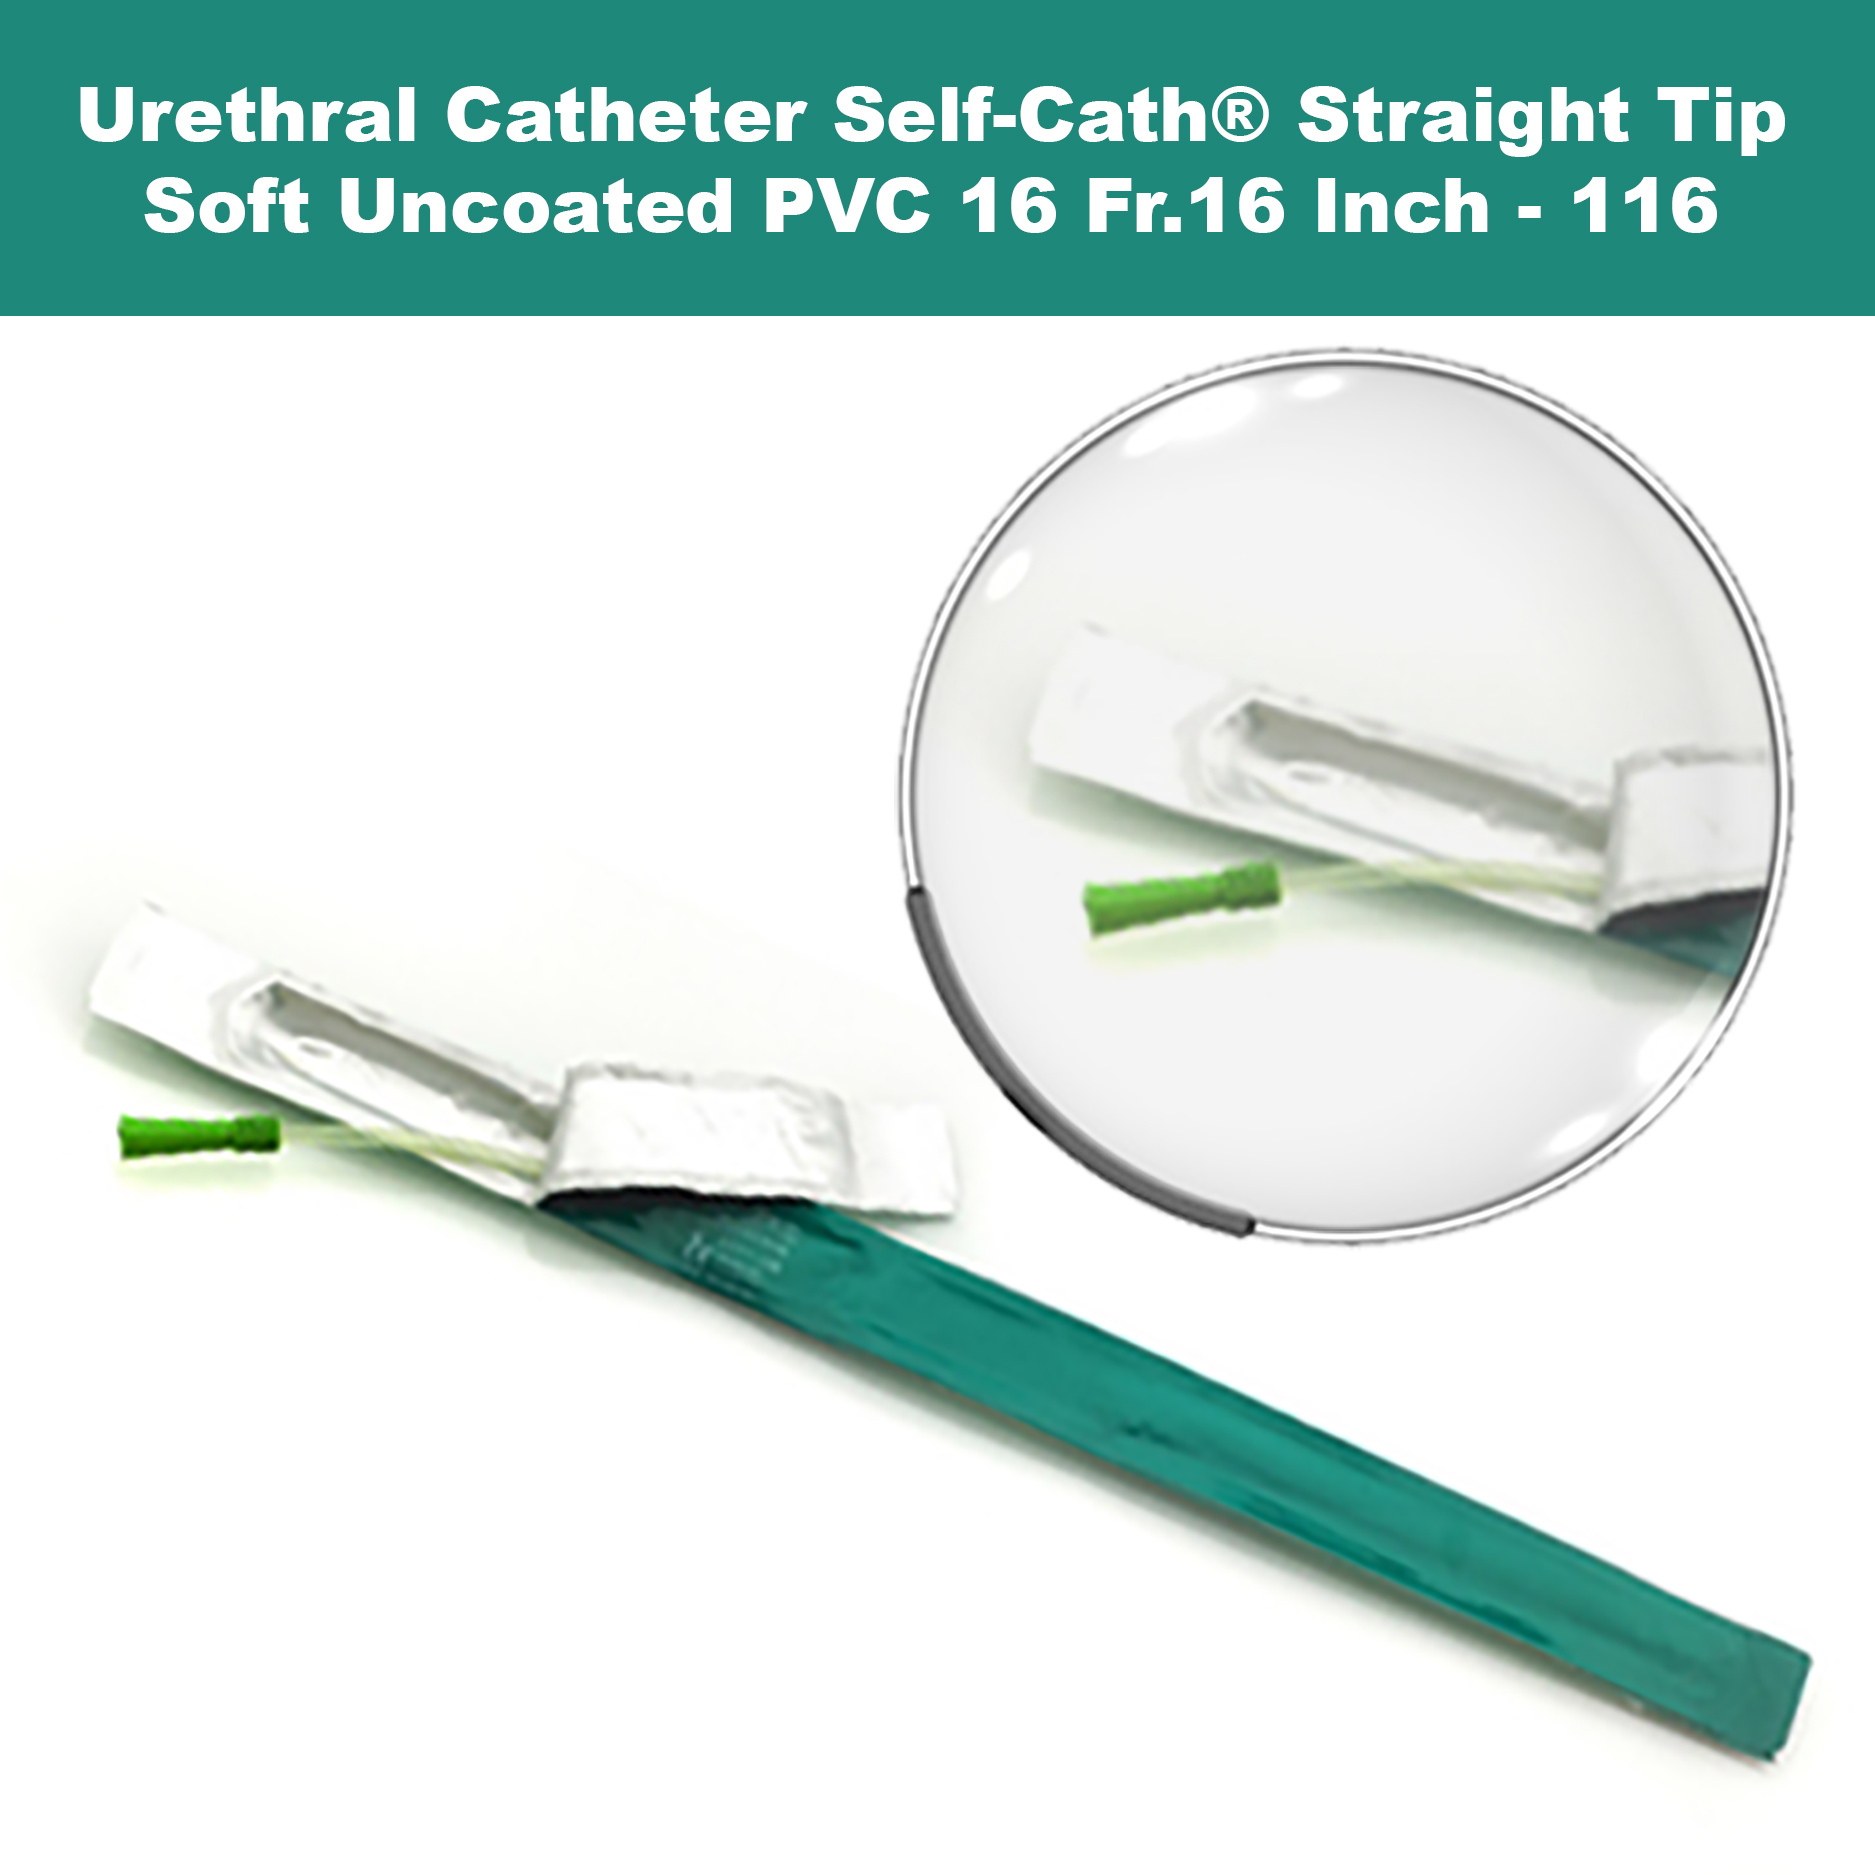 Urethral Catheter Self-Cath® Straight Tip Uncoated PVC 16Fr. 16 Inch-116